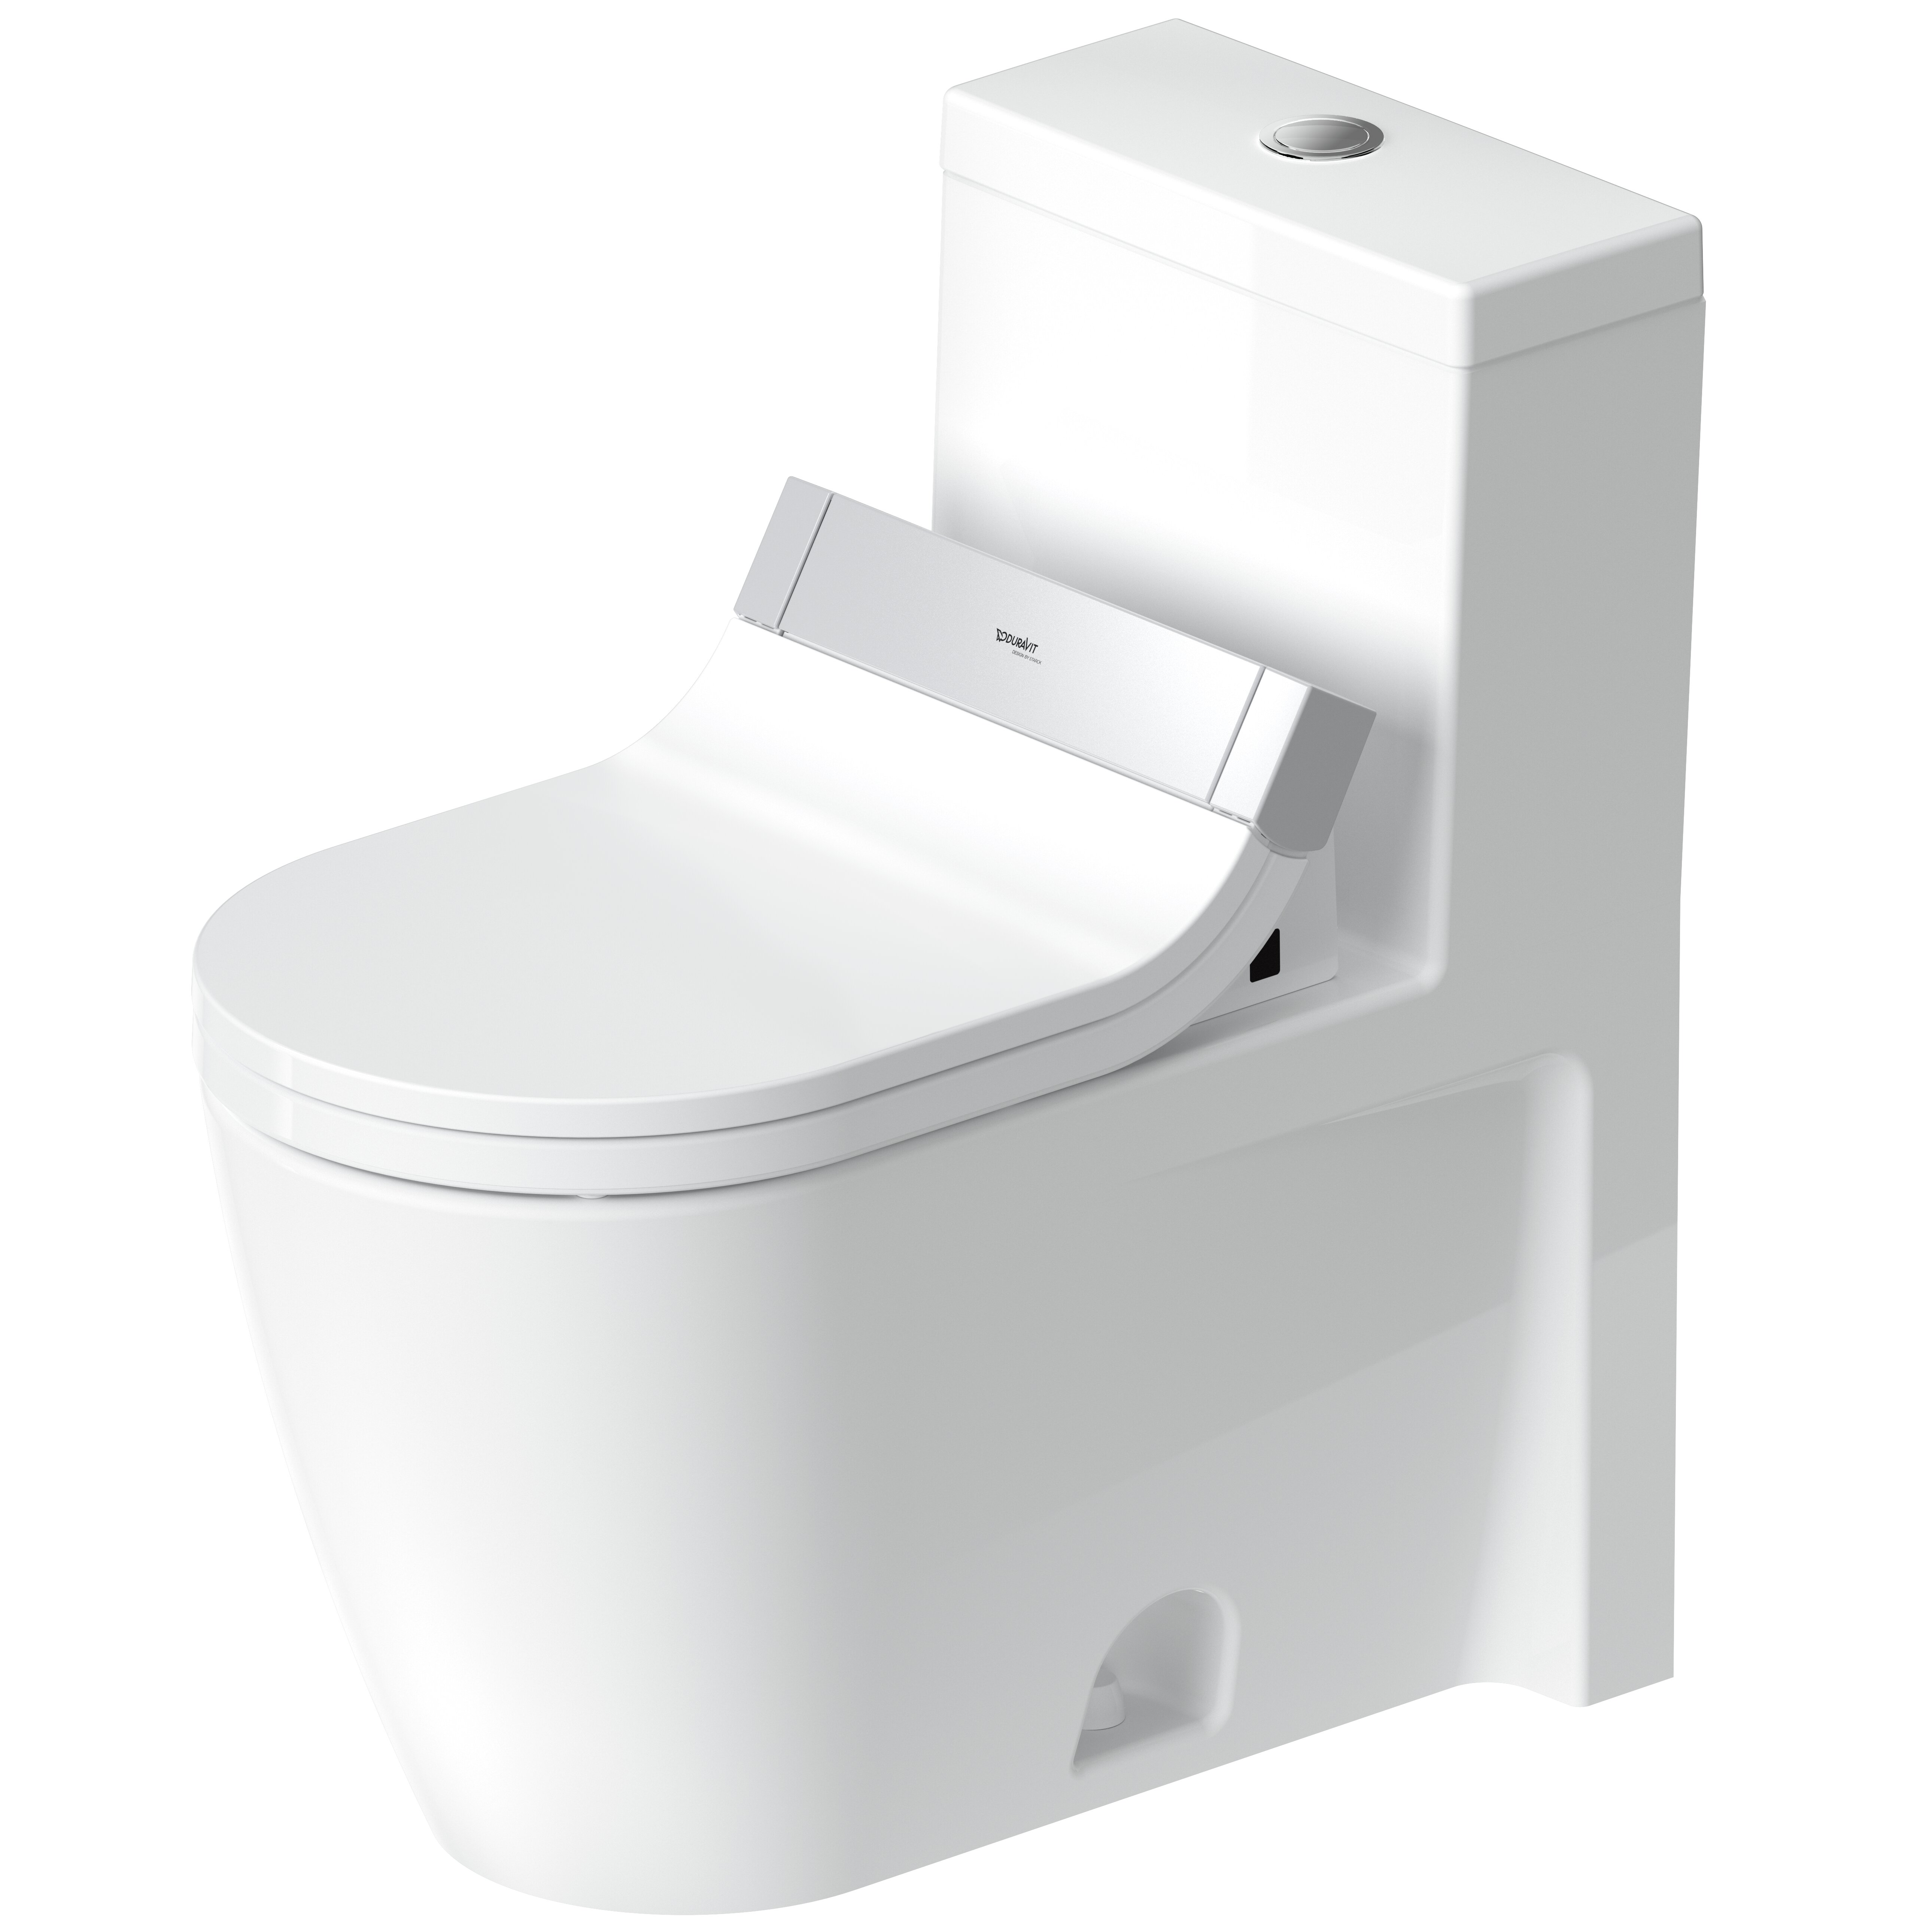 Duravit 1 28 Gpf Water Efficient Elongated One Piece Toilet Seat Included Wayfair